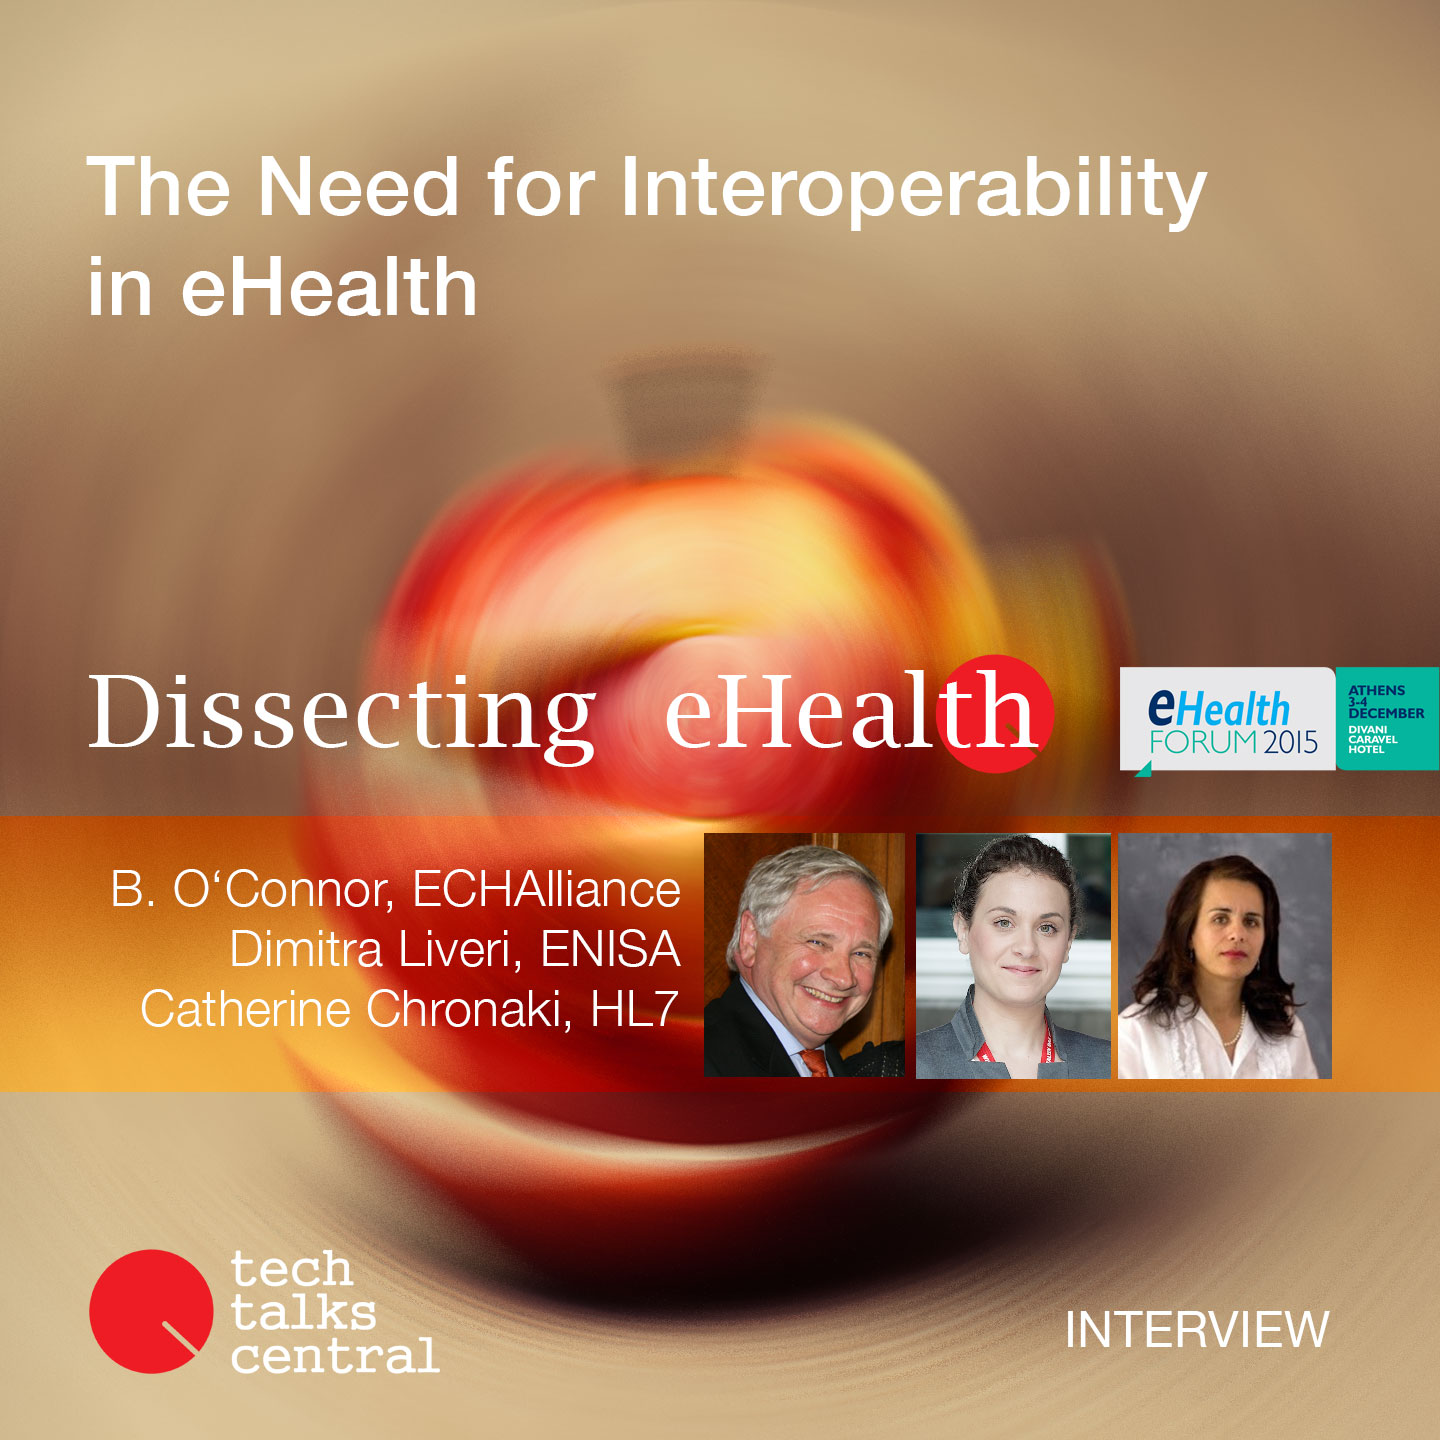 The Need for Interoperability in eHealth